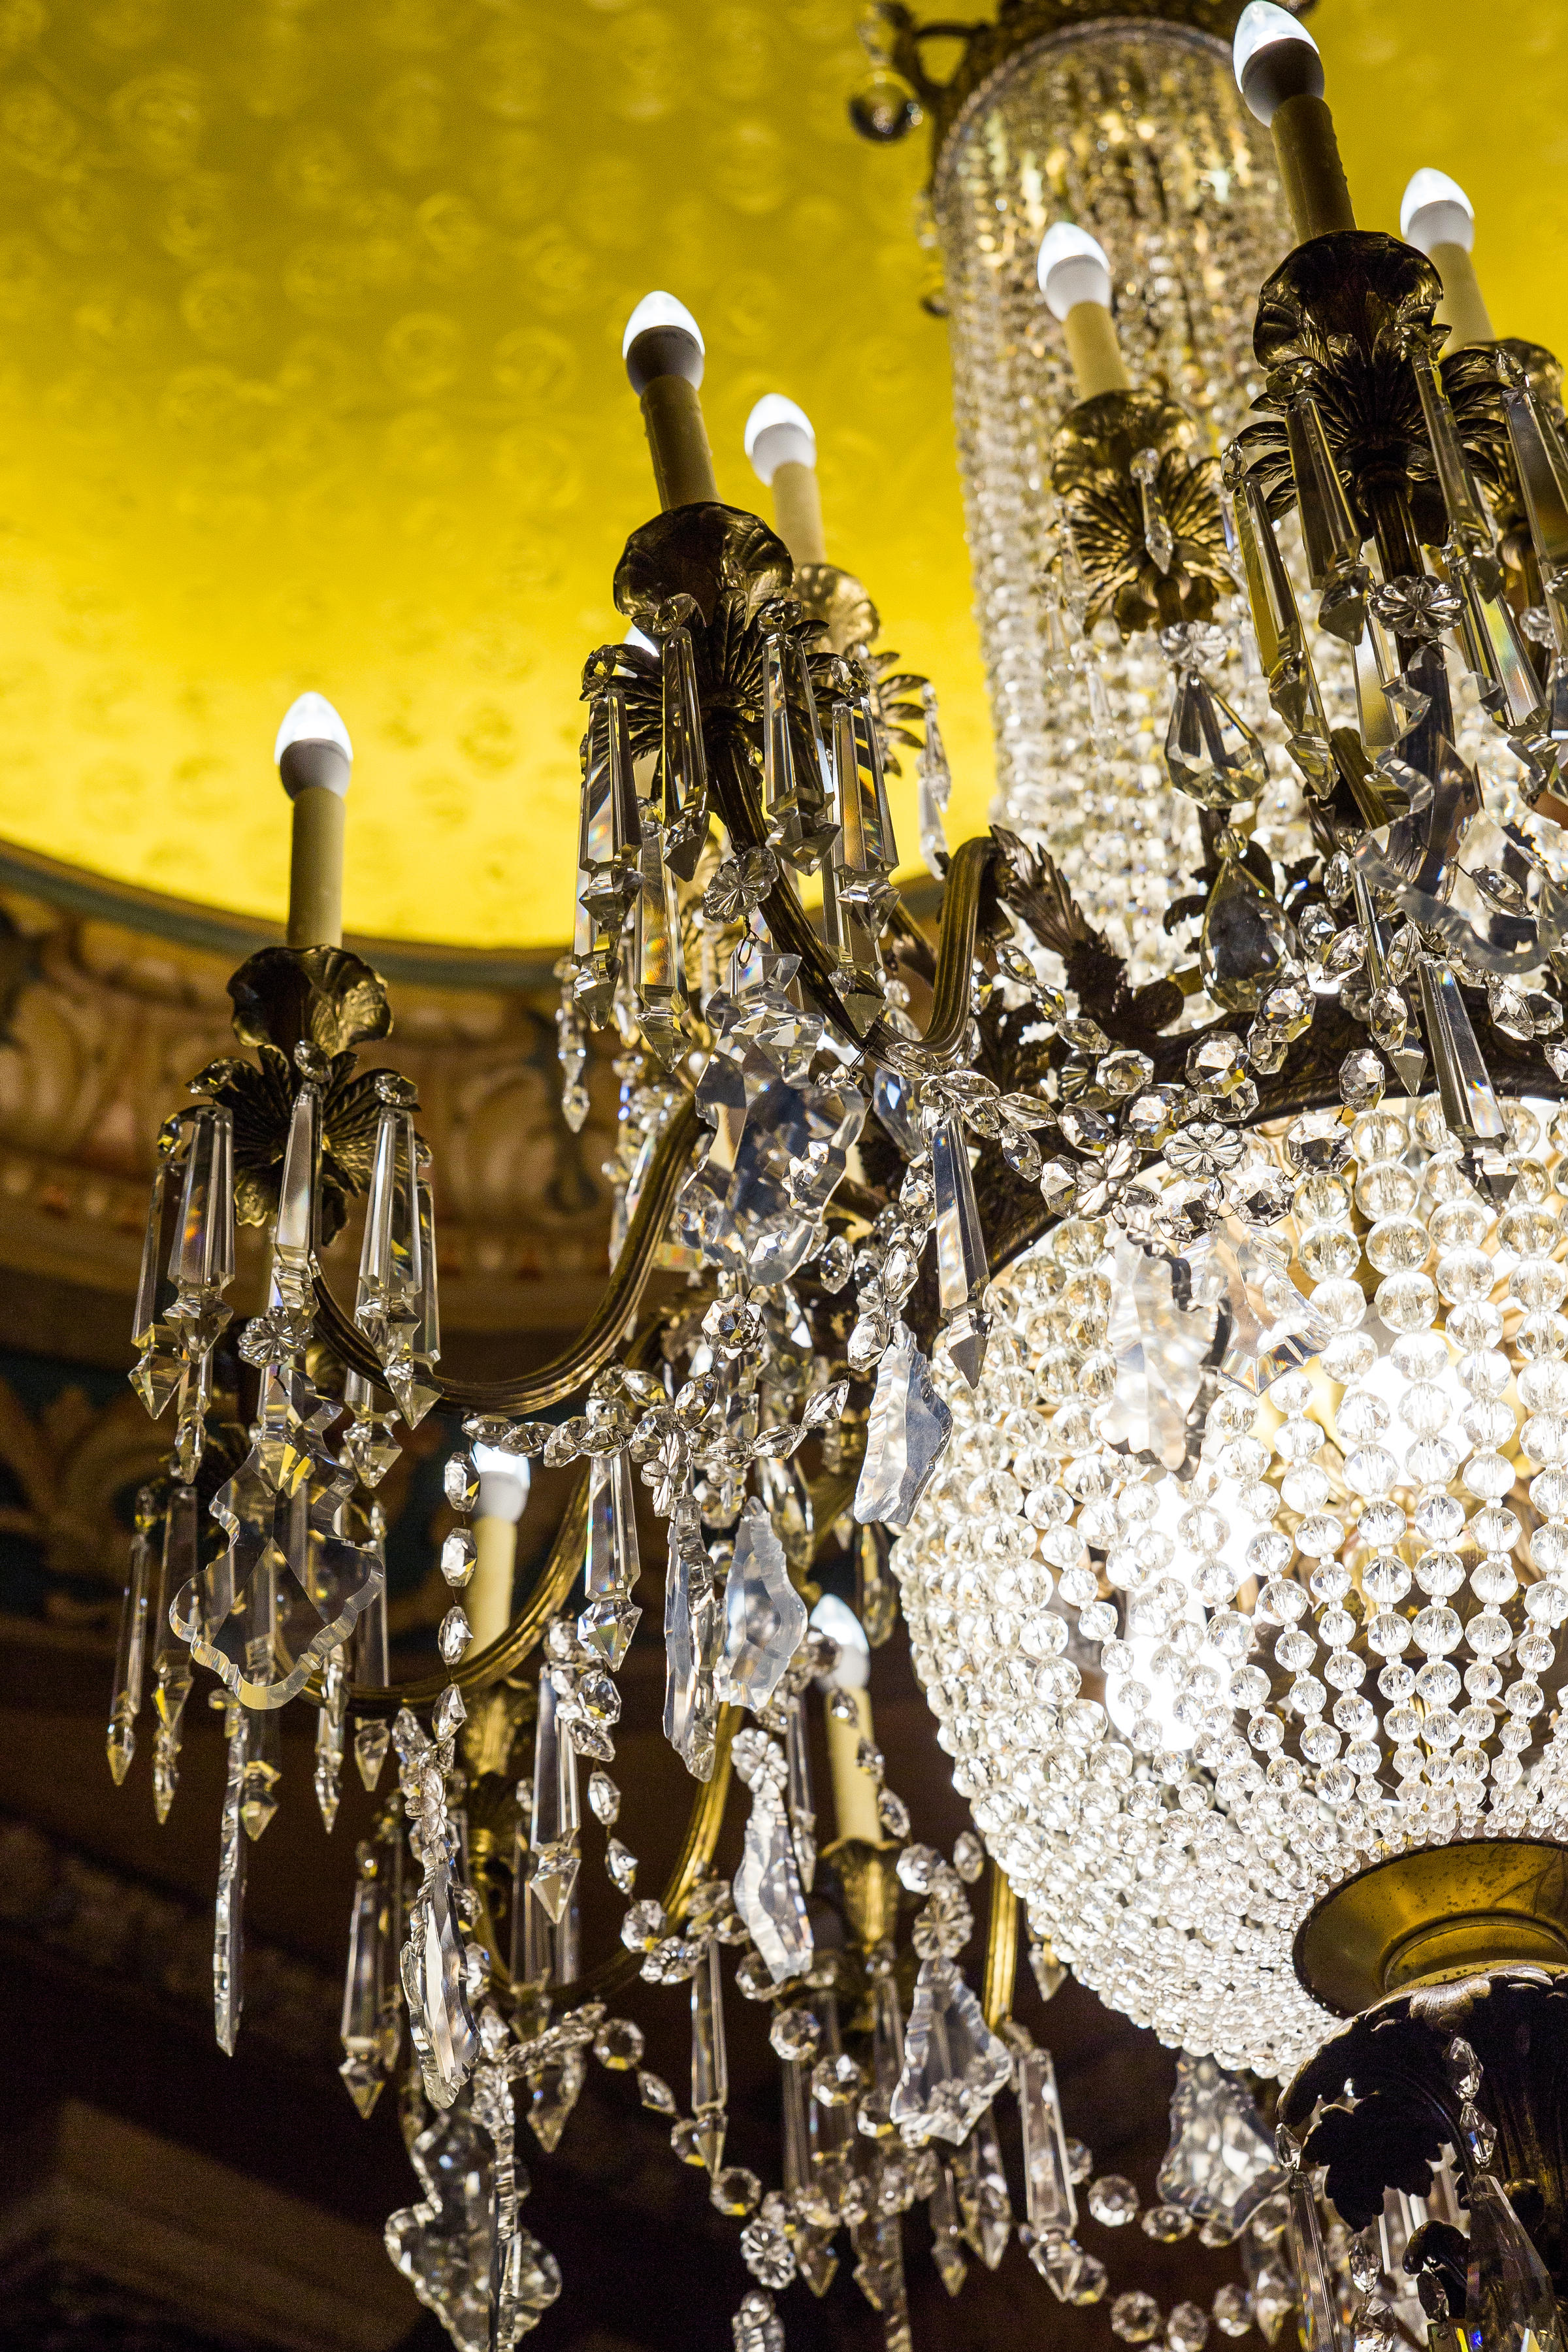 The story behind the gillioz chandelier ksmu radio the chandelier contains 70 pounds of handcut cystal and took over nine hours to install at the gillioz aloadofball Choice Image